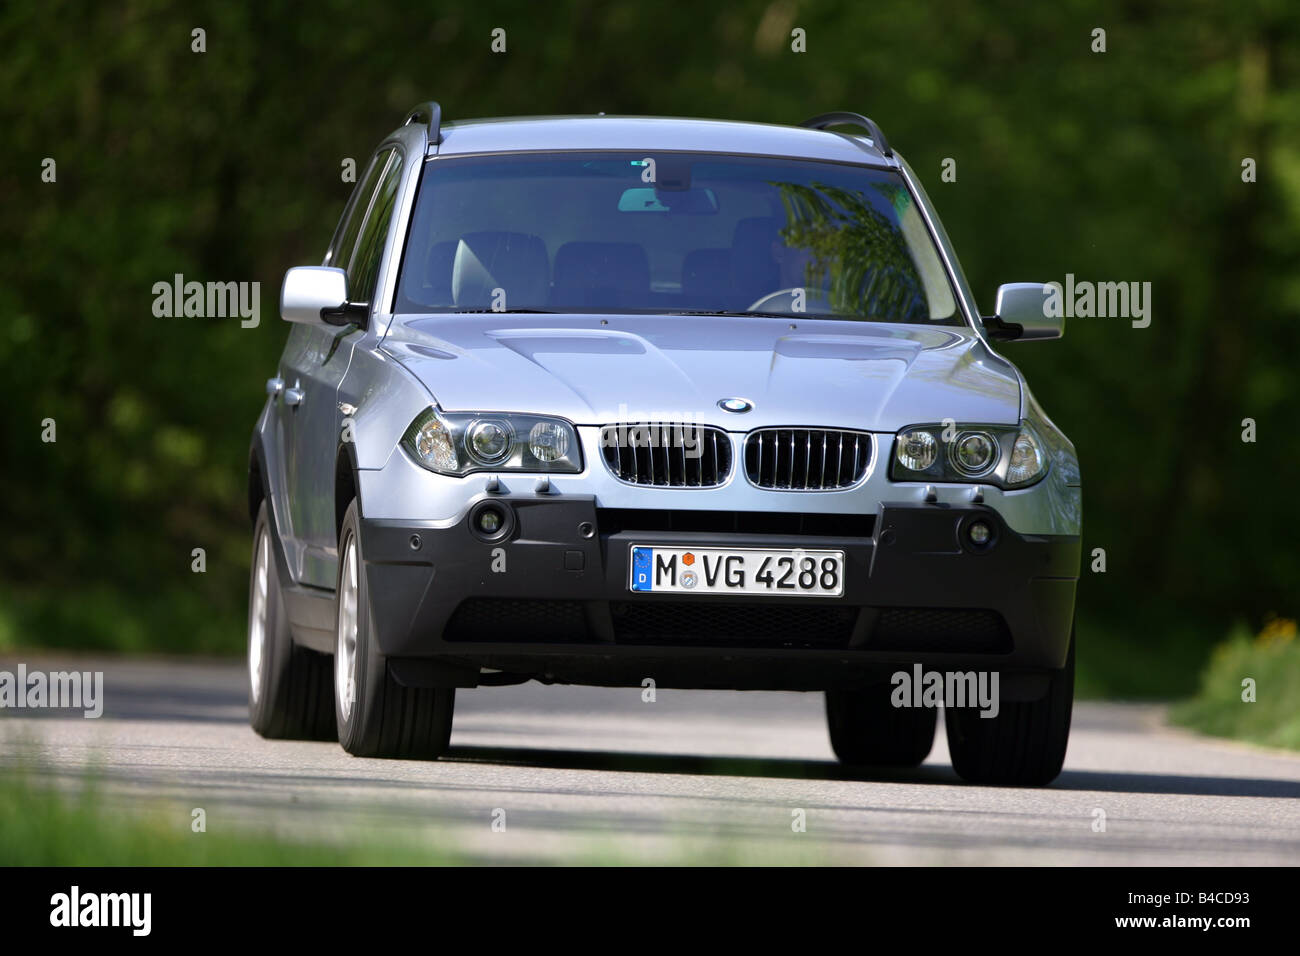 Car bmw x3 3 0i cross country vehicle model year 2005